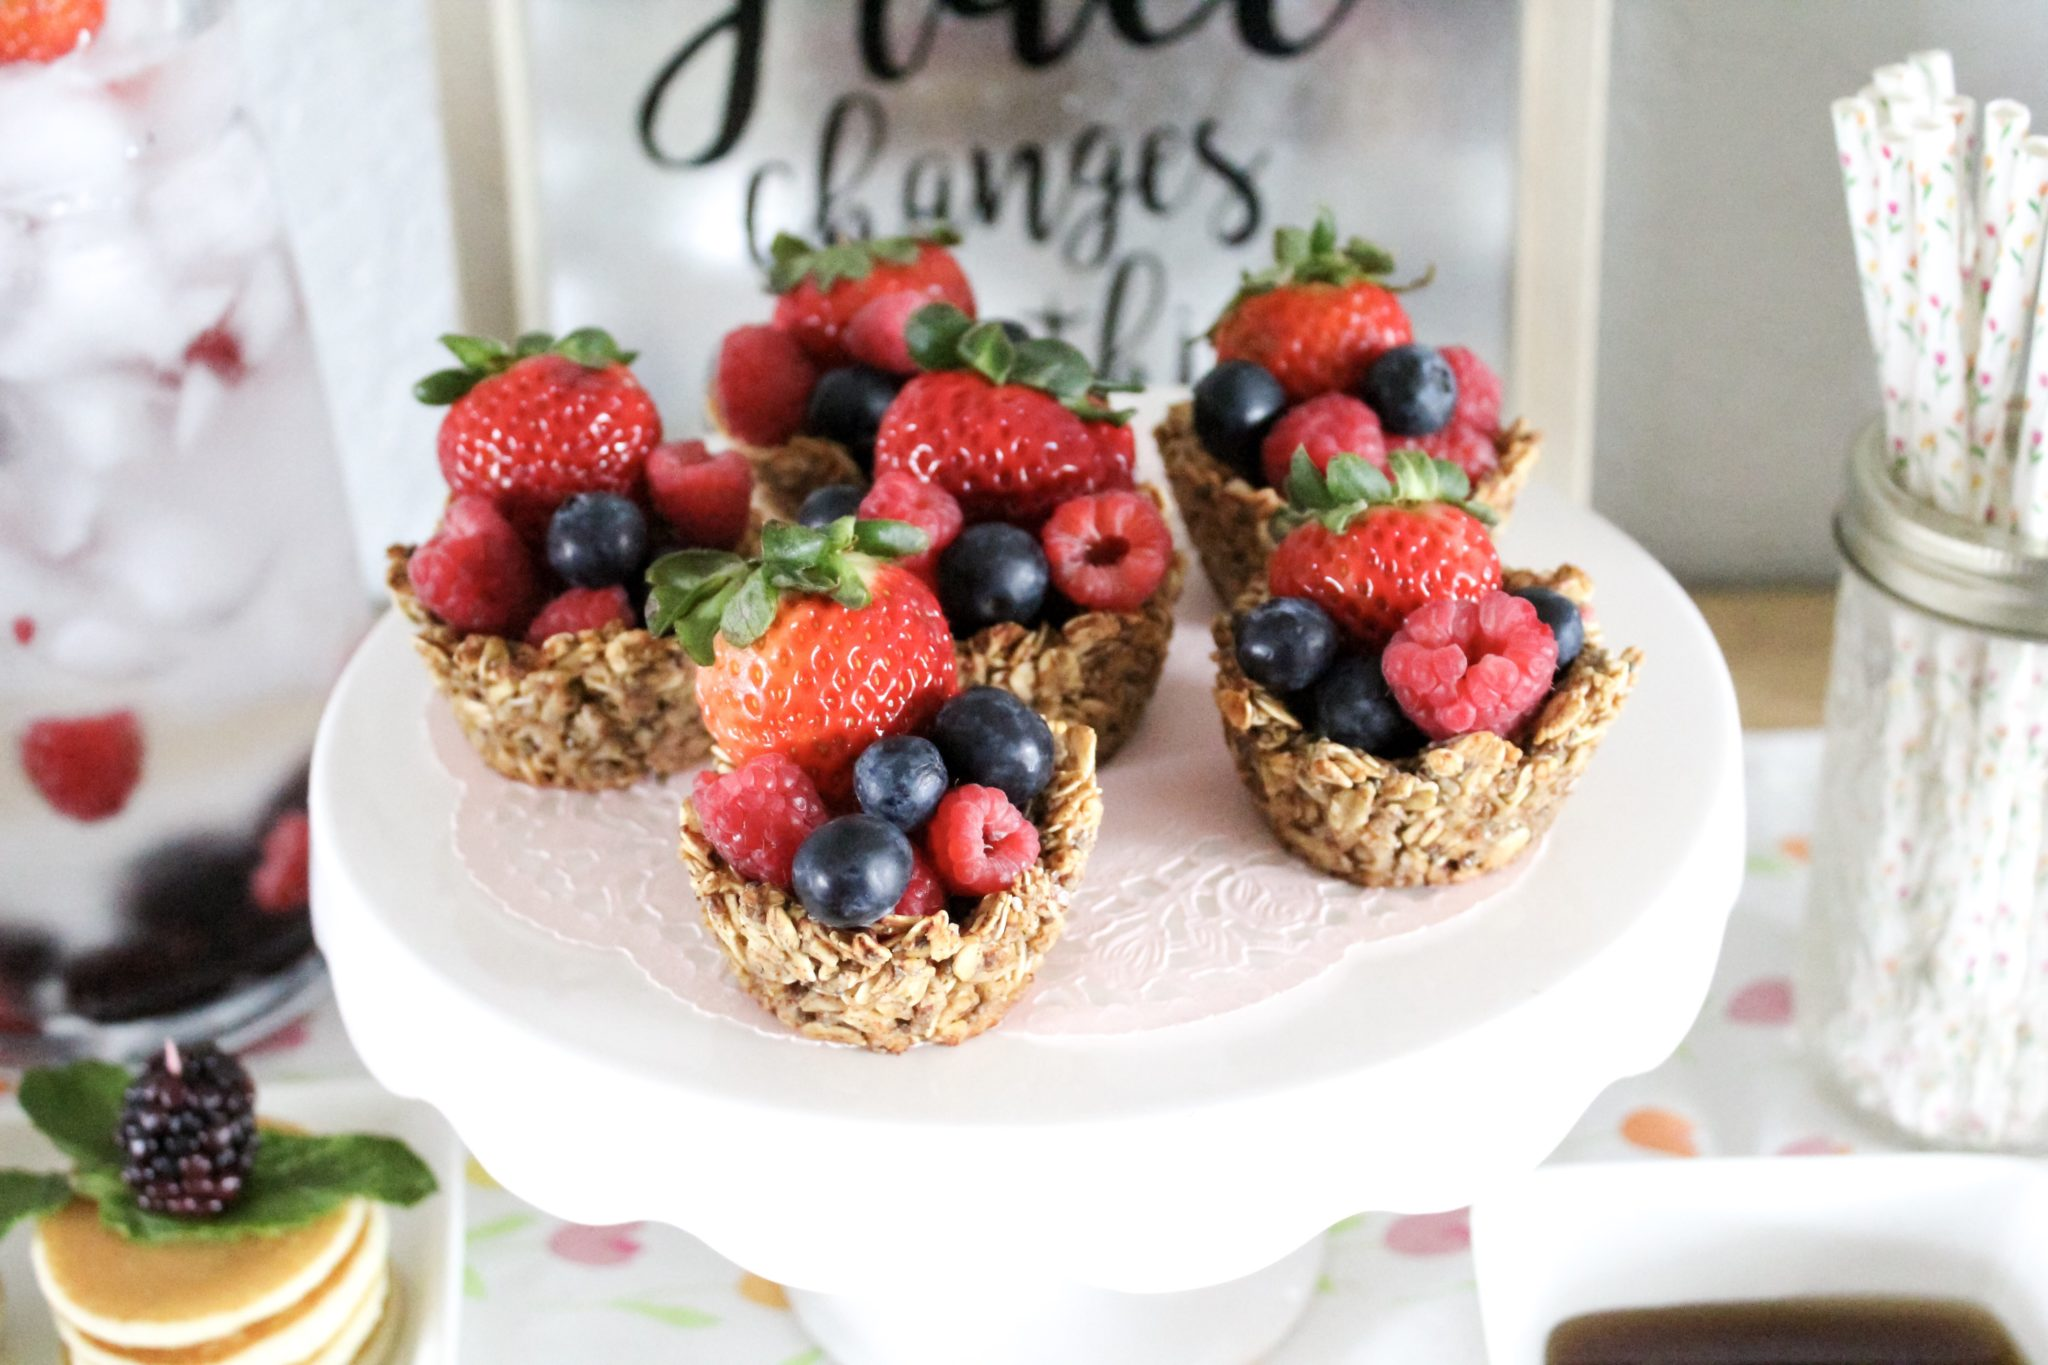 Mother's Day Brunch Menu and Tablescape with Mini Pancake Stacks and Fresh Fruit Oatmeal cups